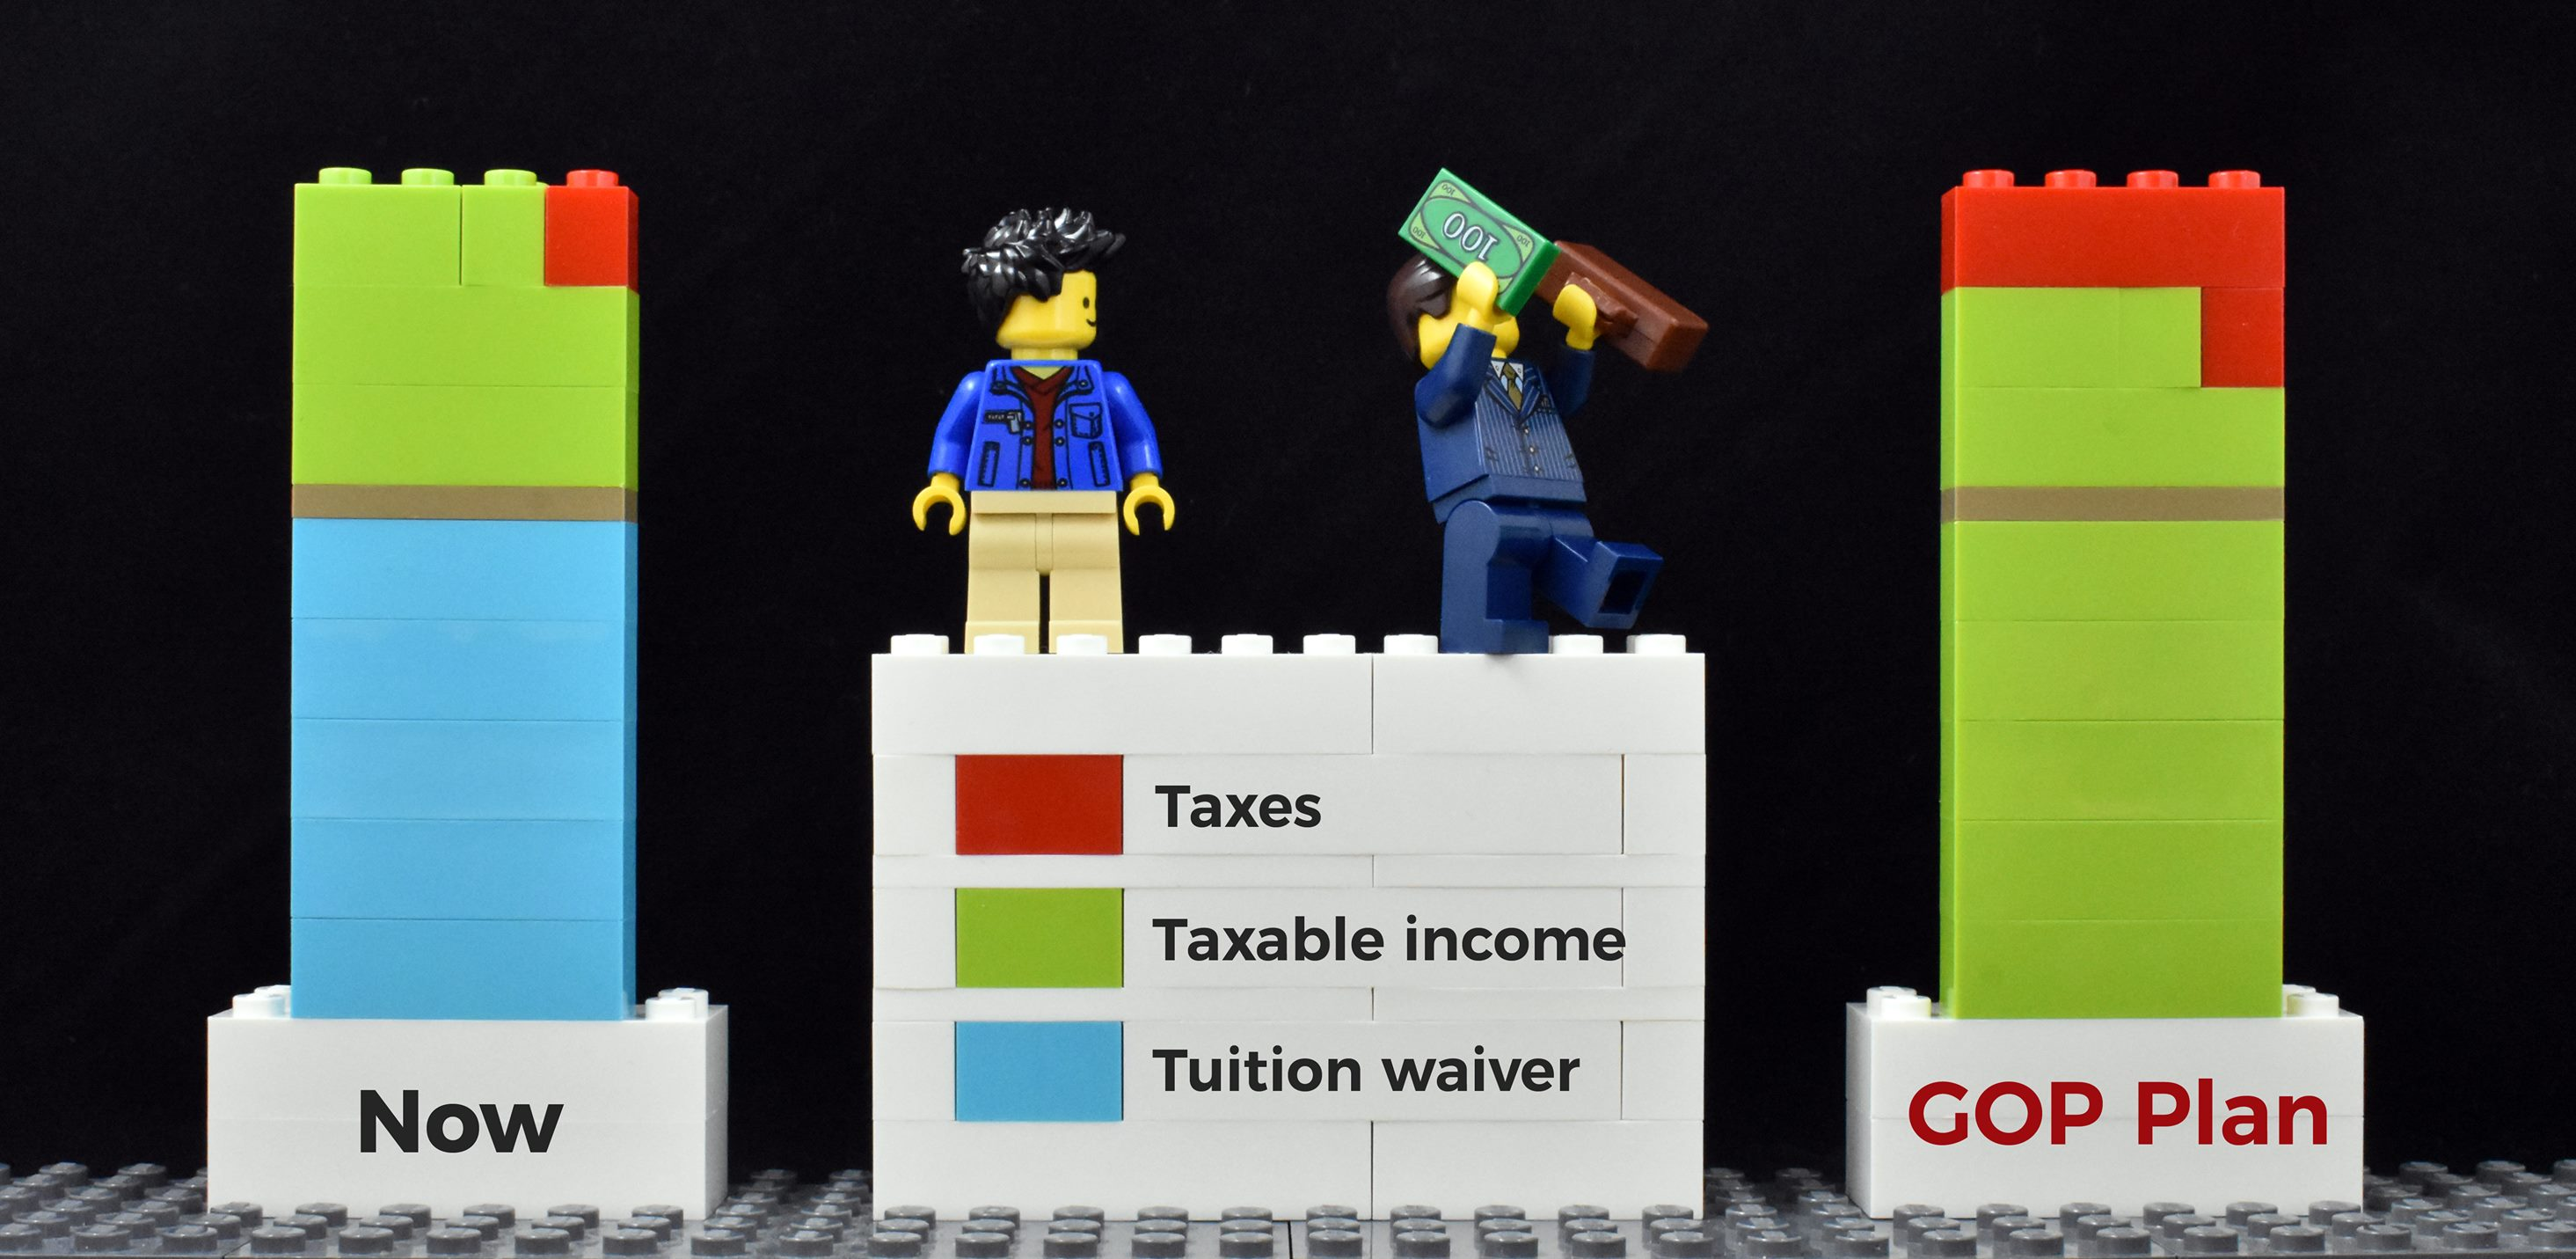 lego tuition waiver tax